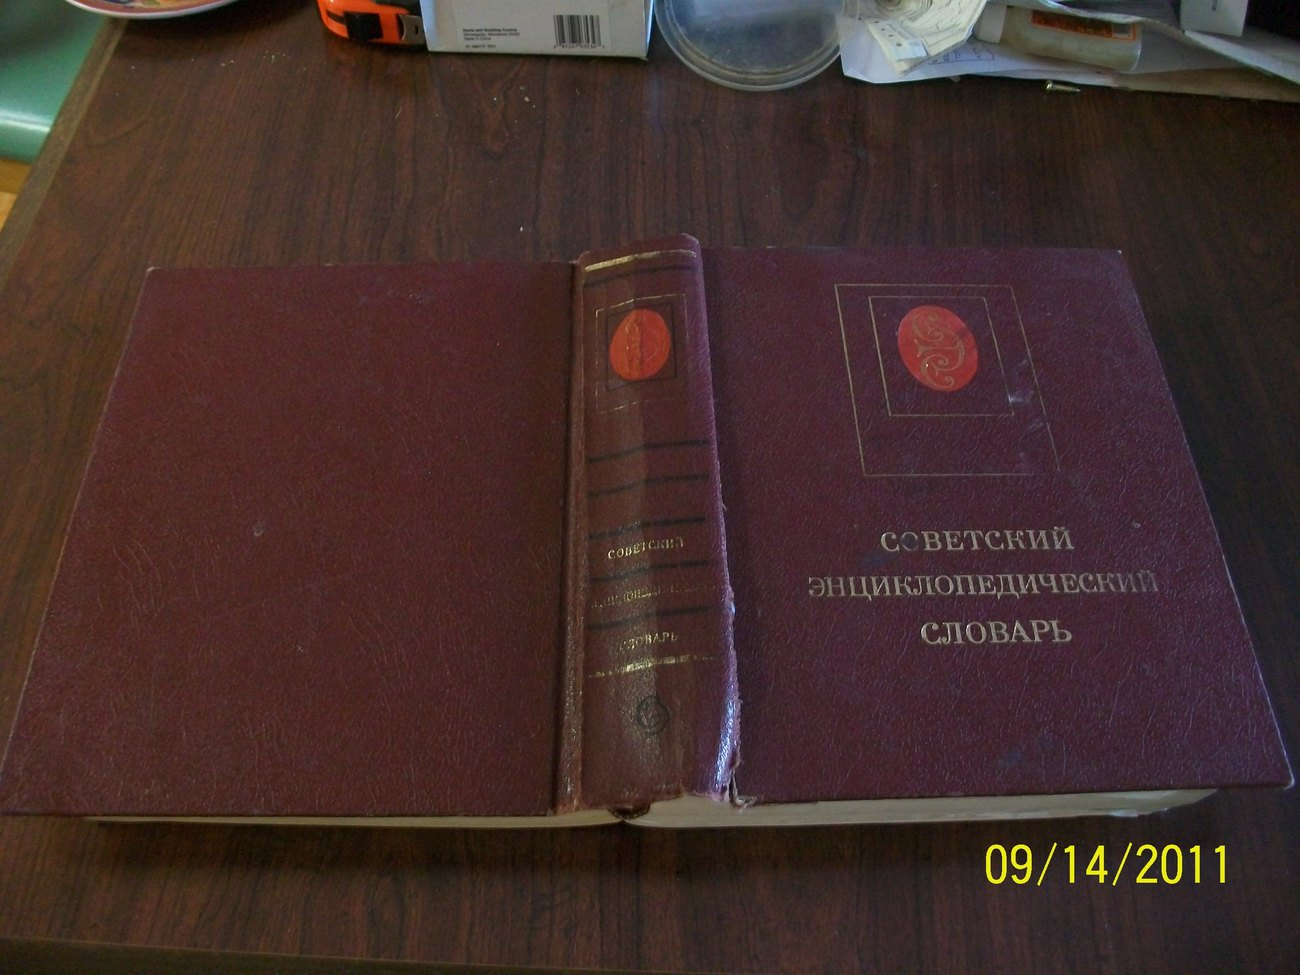 soviet encyclopedic dictionary by Prohorov, Moscow 1983